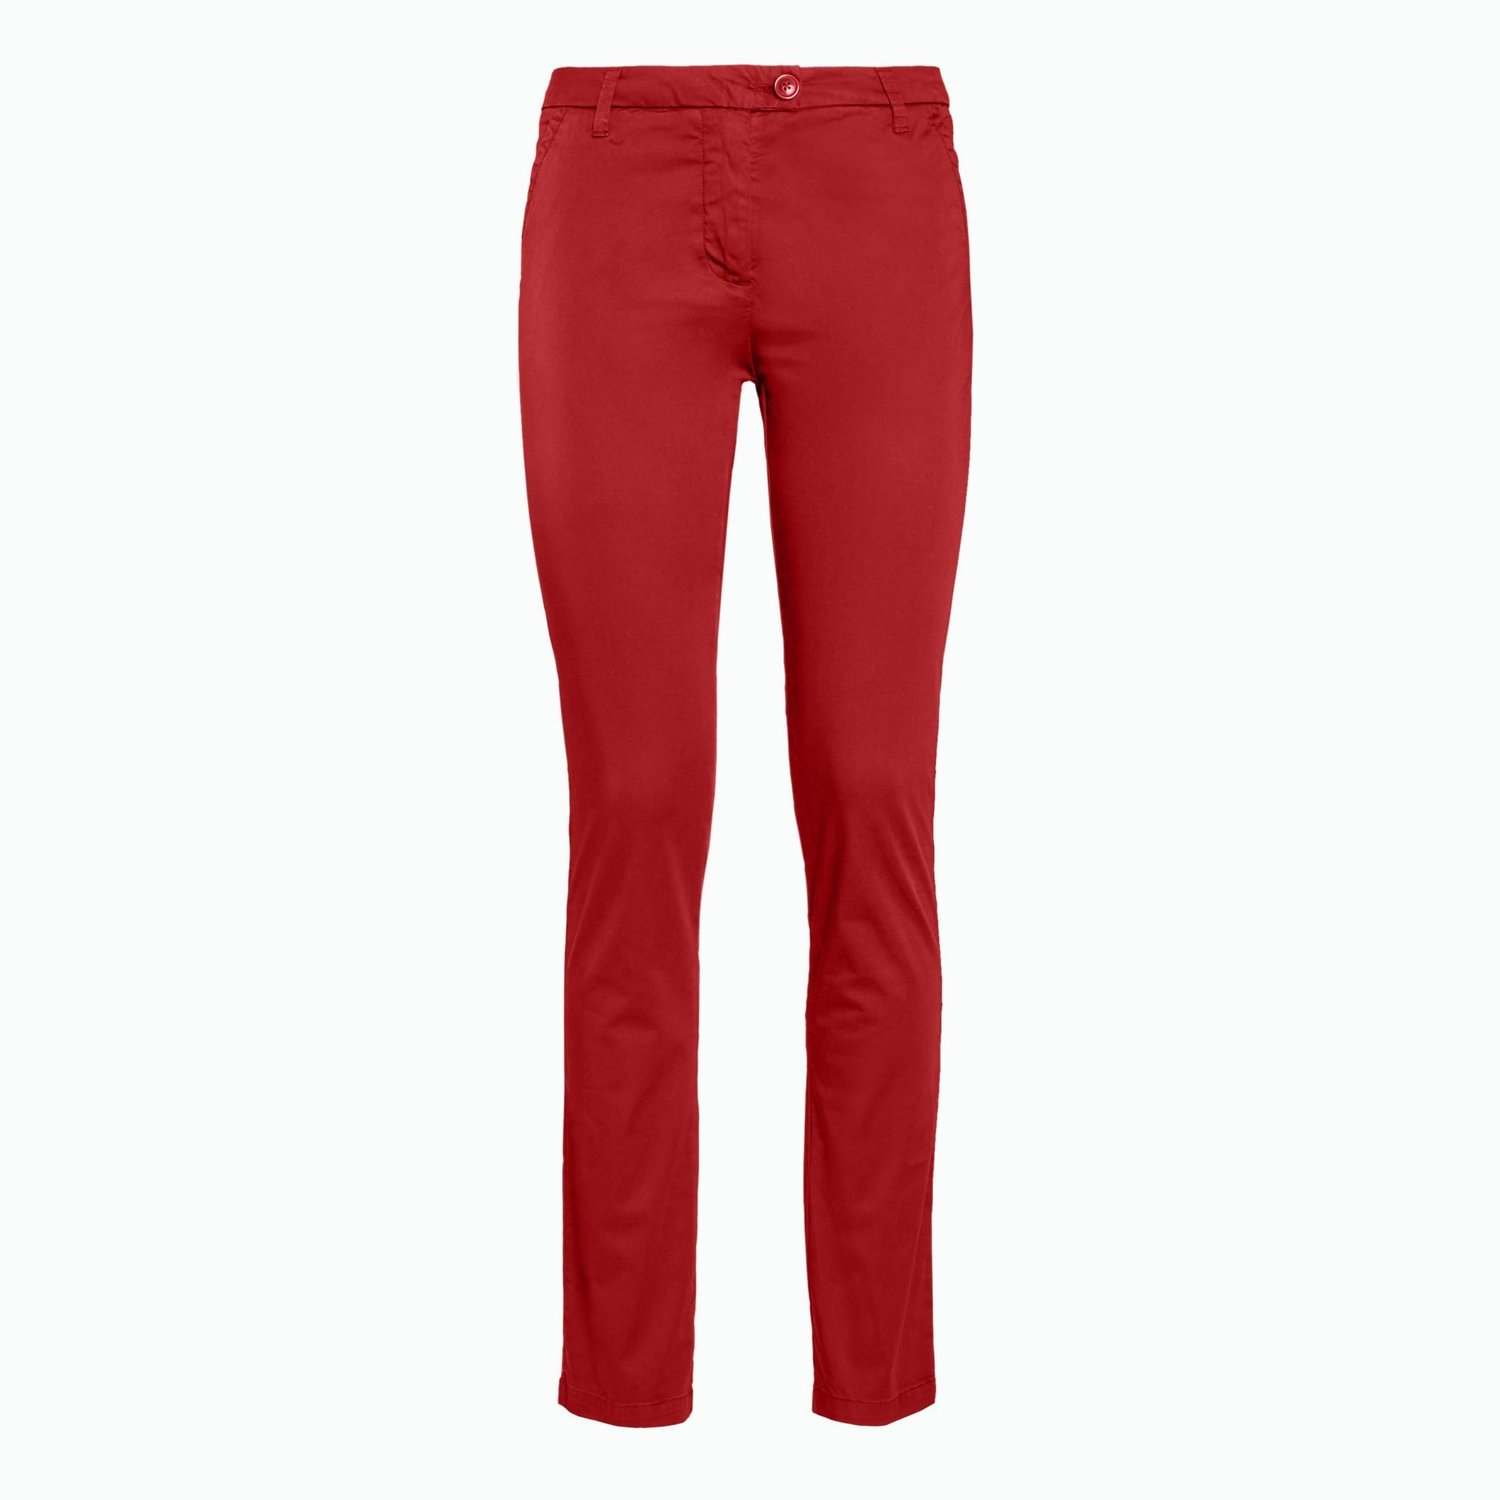 Trouser A2 - Chili Red